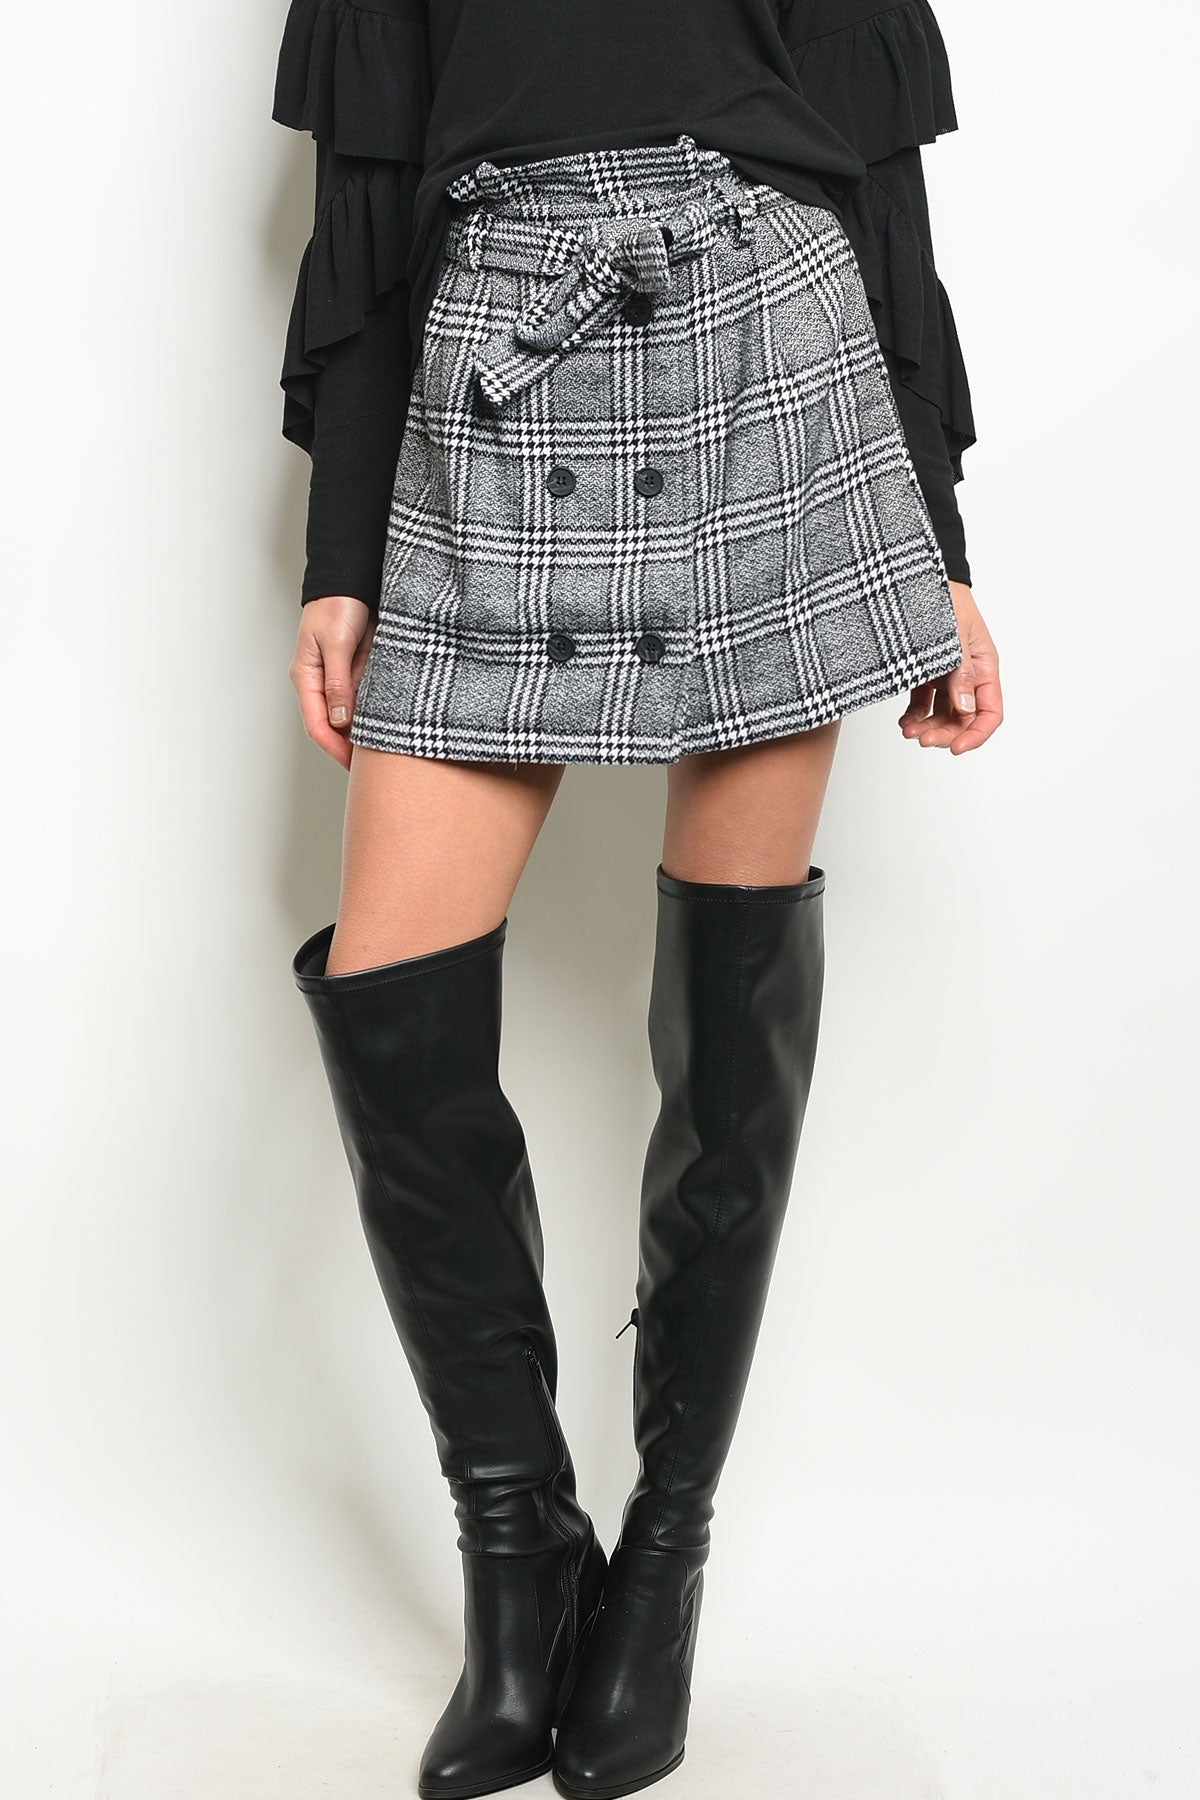 Serves 'Em Plaid Paperbag Skirt